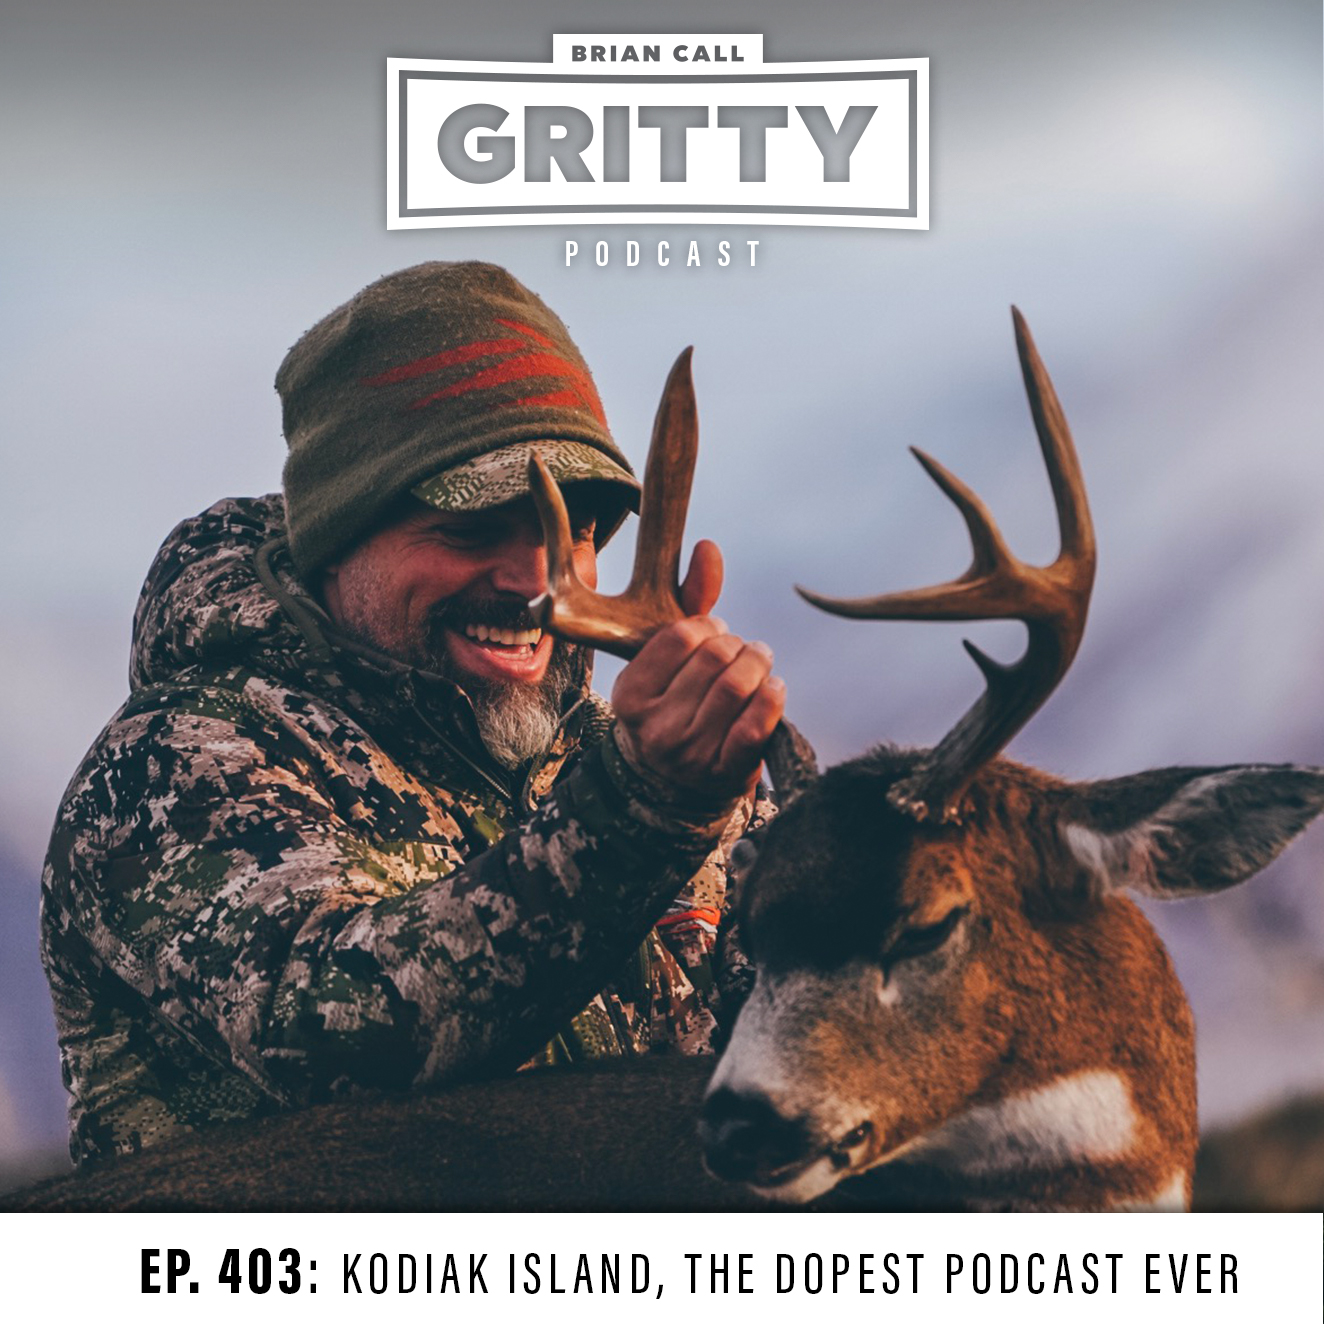 EP. 403: KODIAK ISLAND, THE DOPEST PODCAST EVER